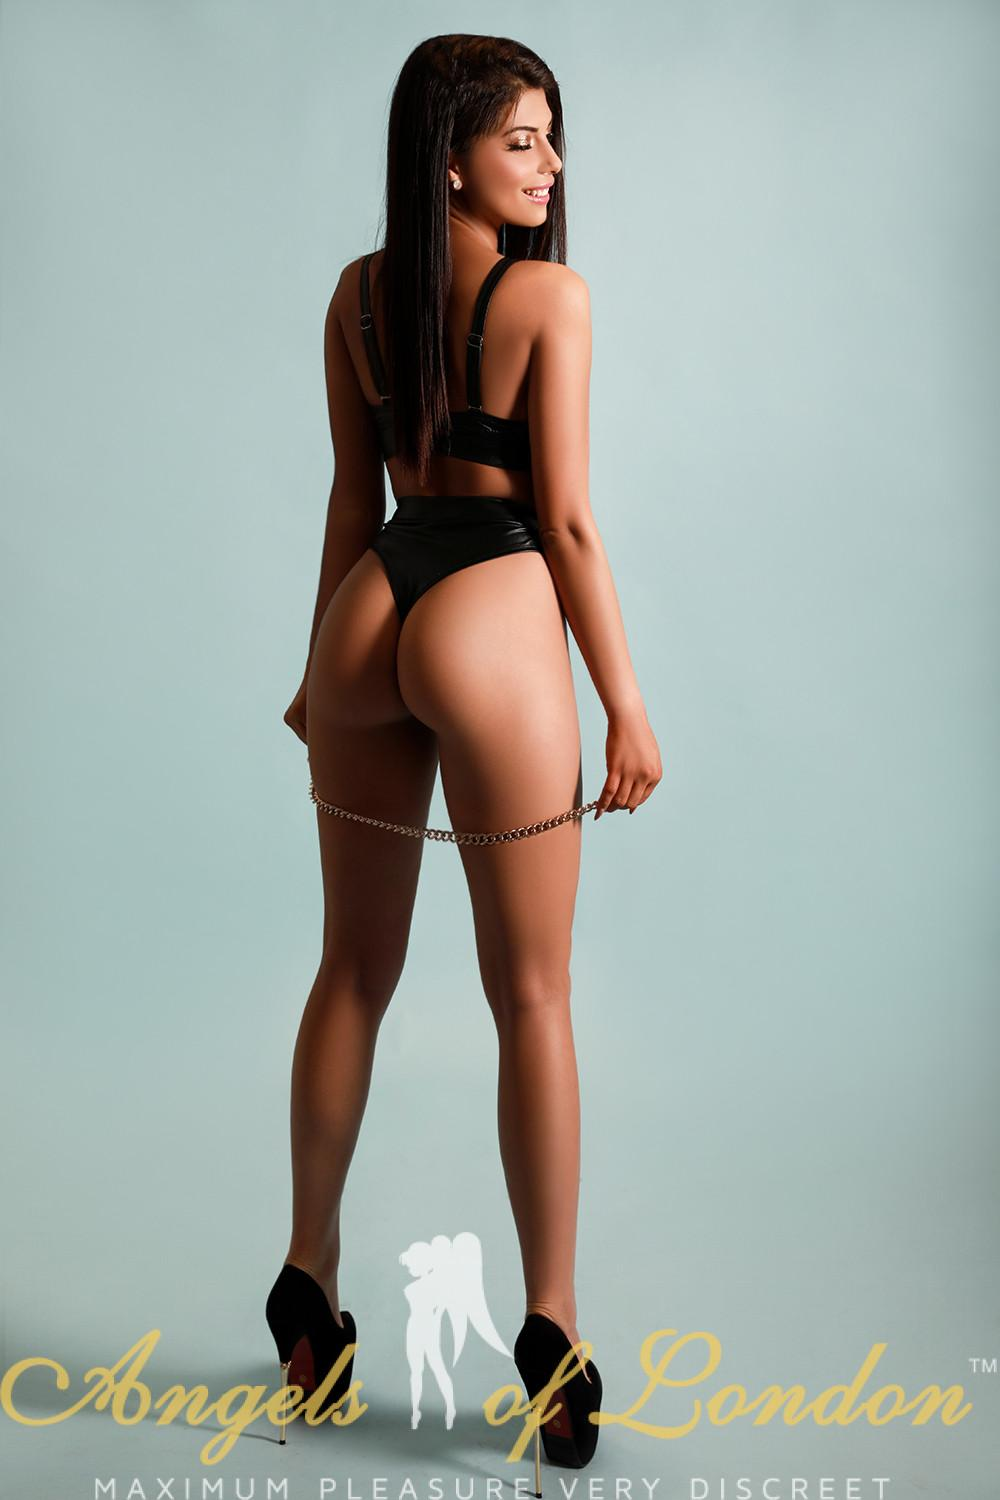 Yanna from Angels of London